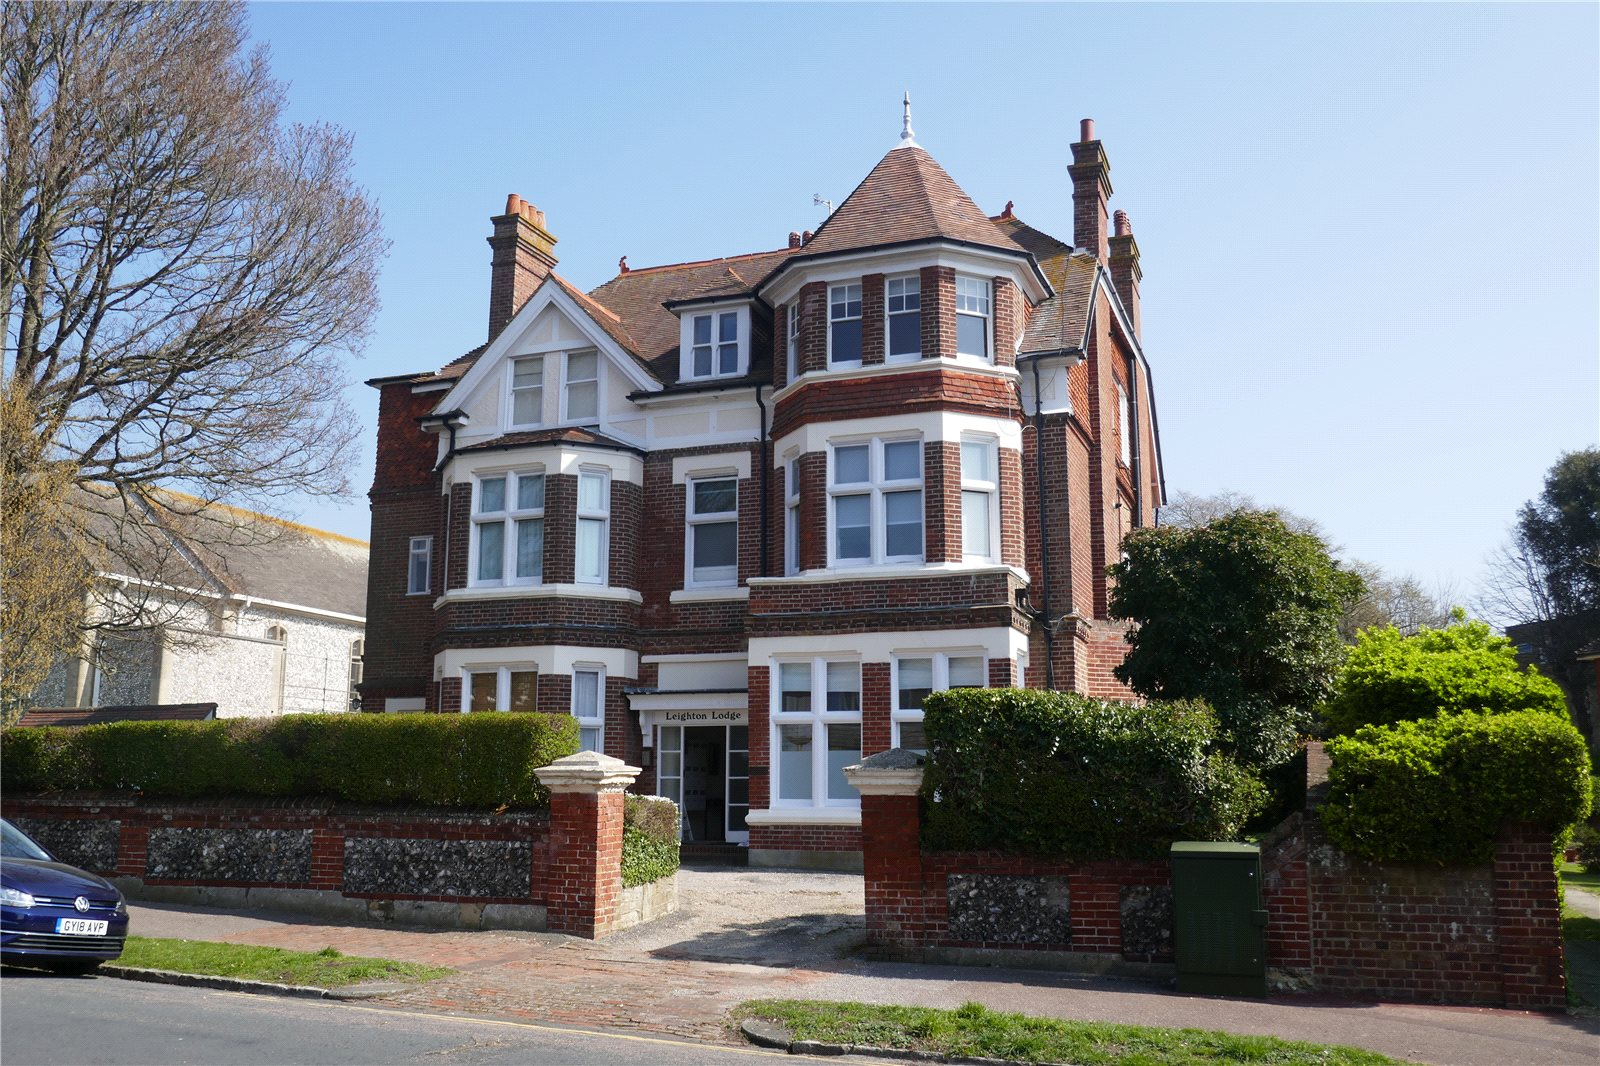 Staveley Road, Meads, Eastbourne